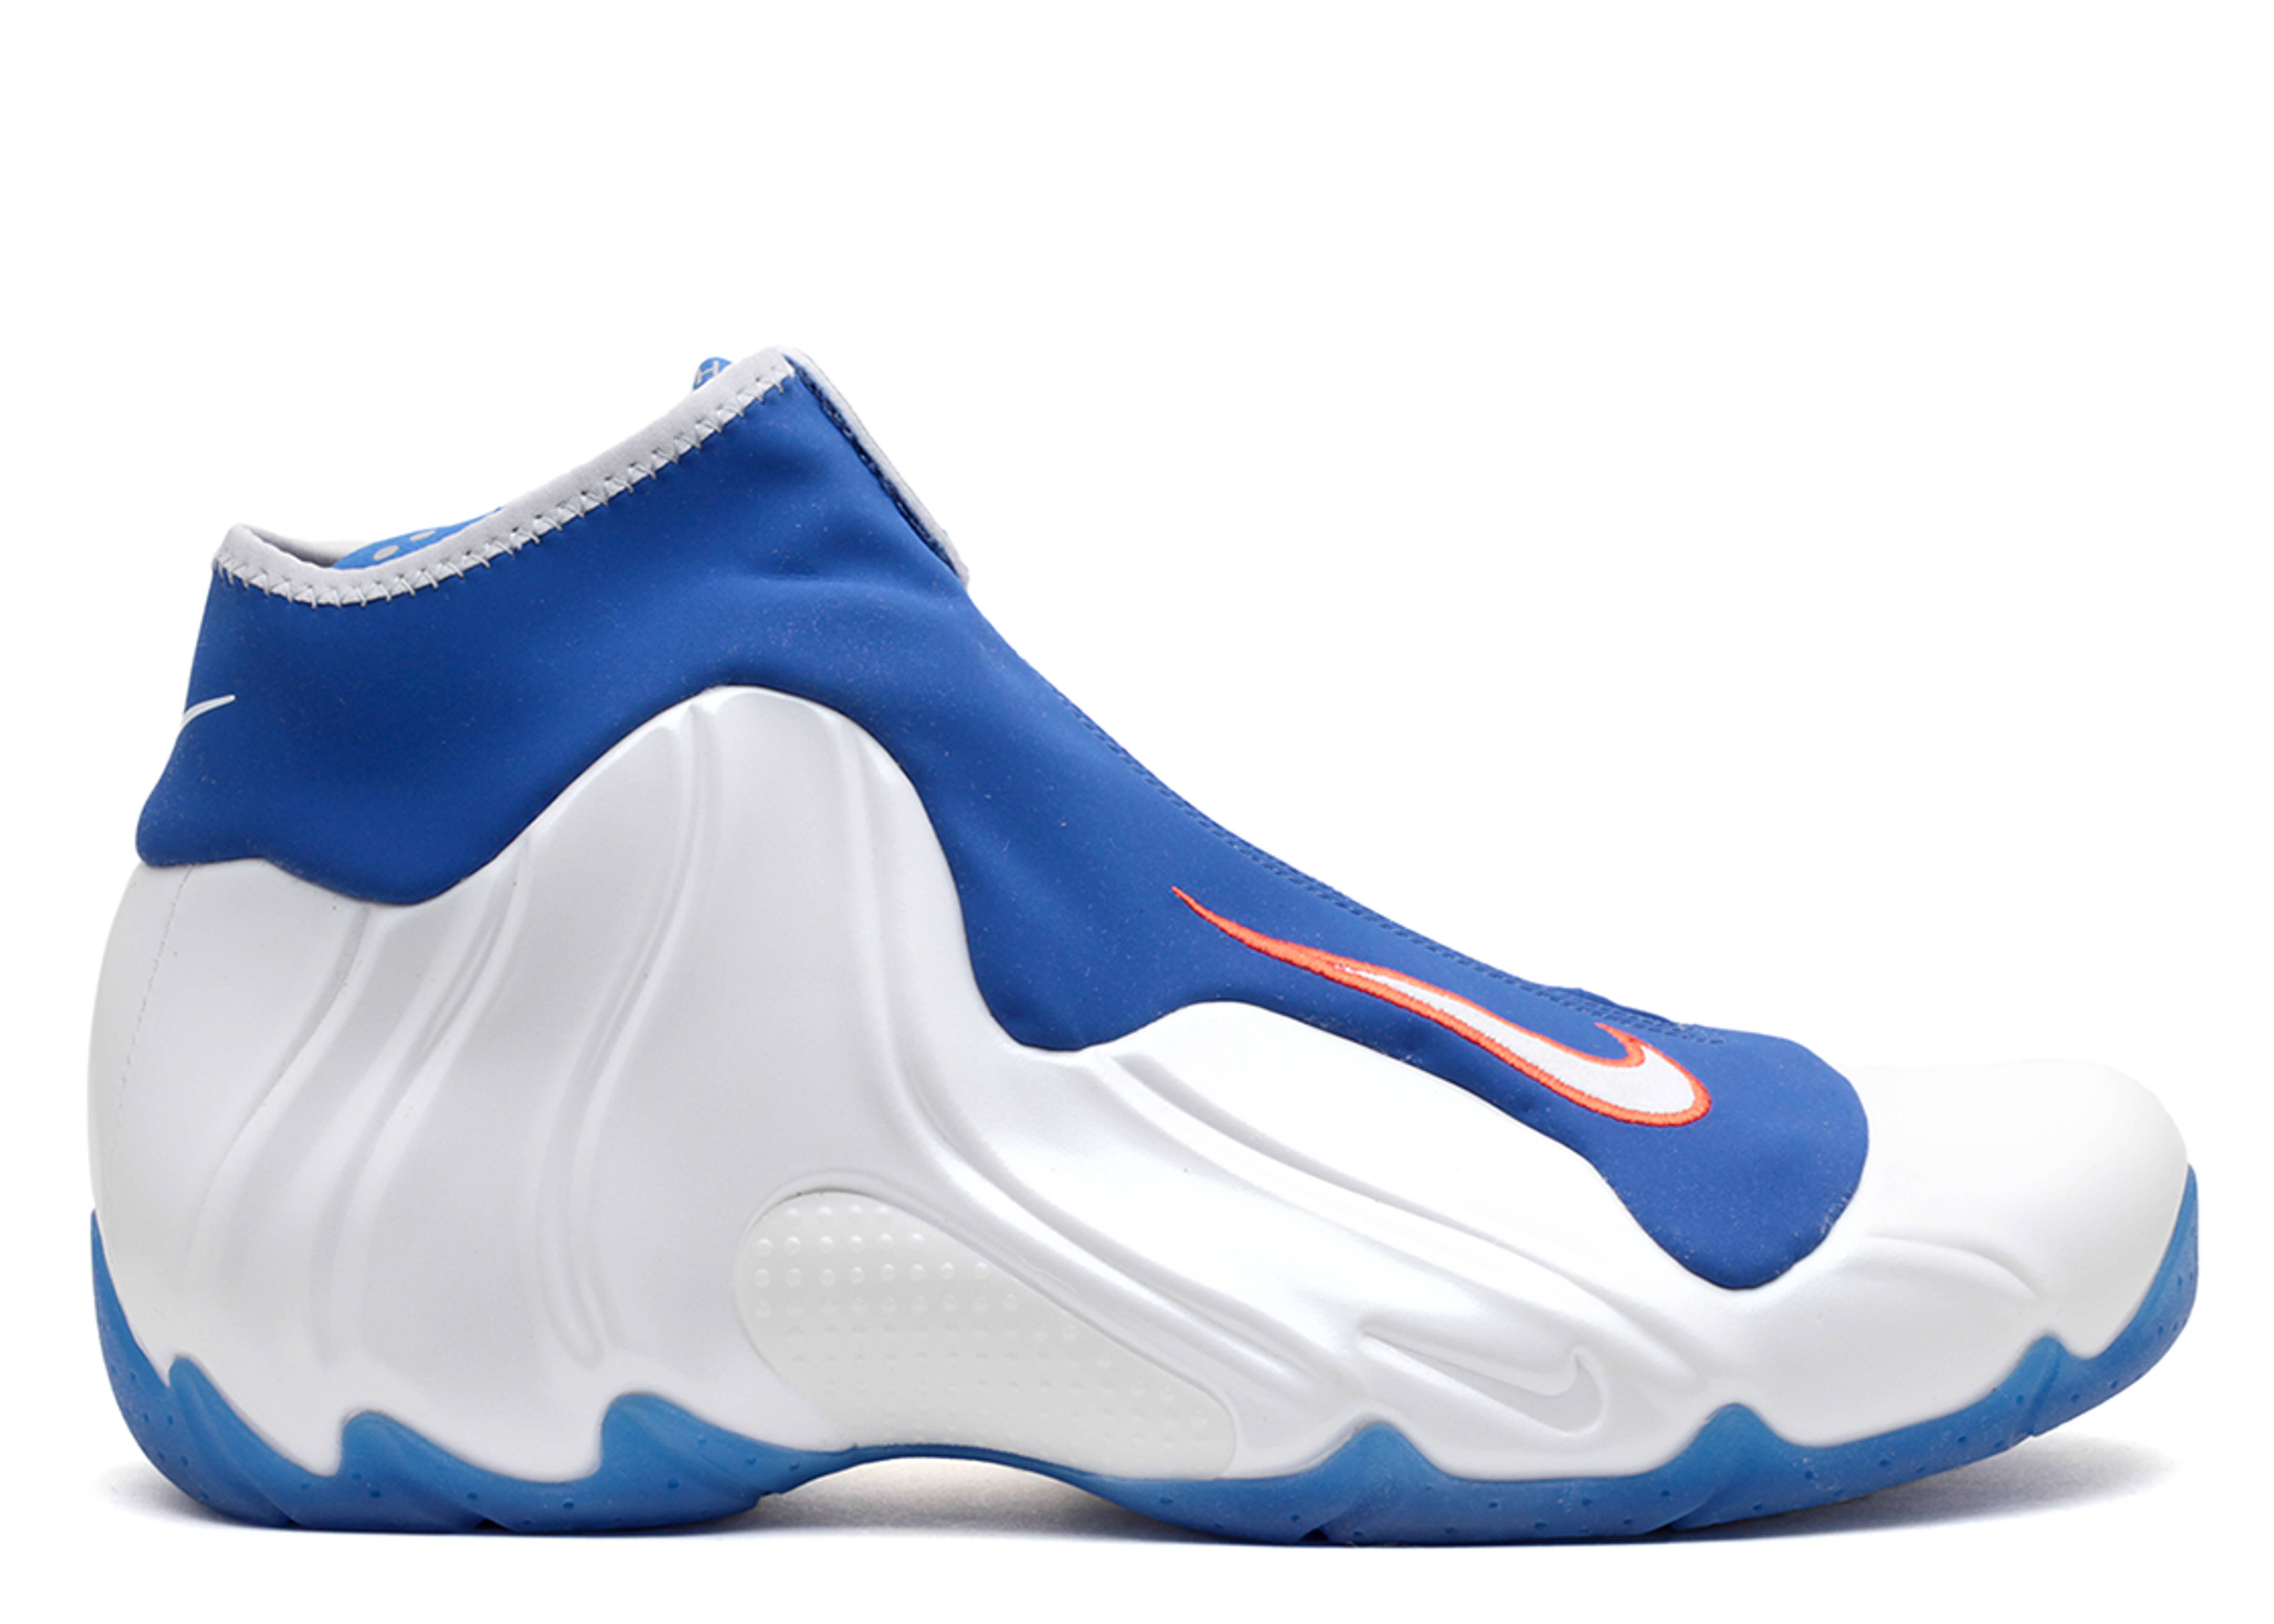 sports shoes f1f80 4a6c2 nike. air flightposite 2014